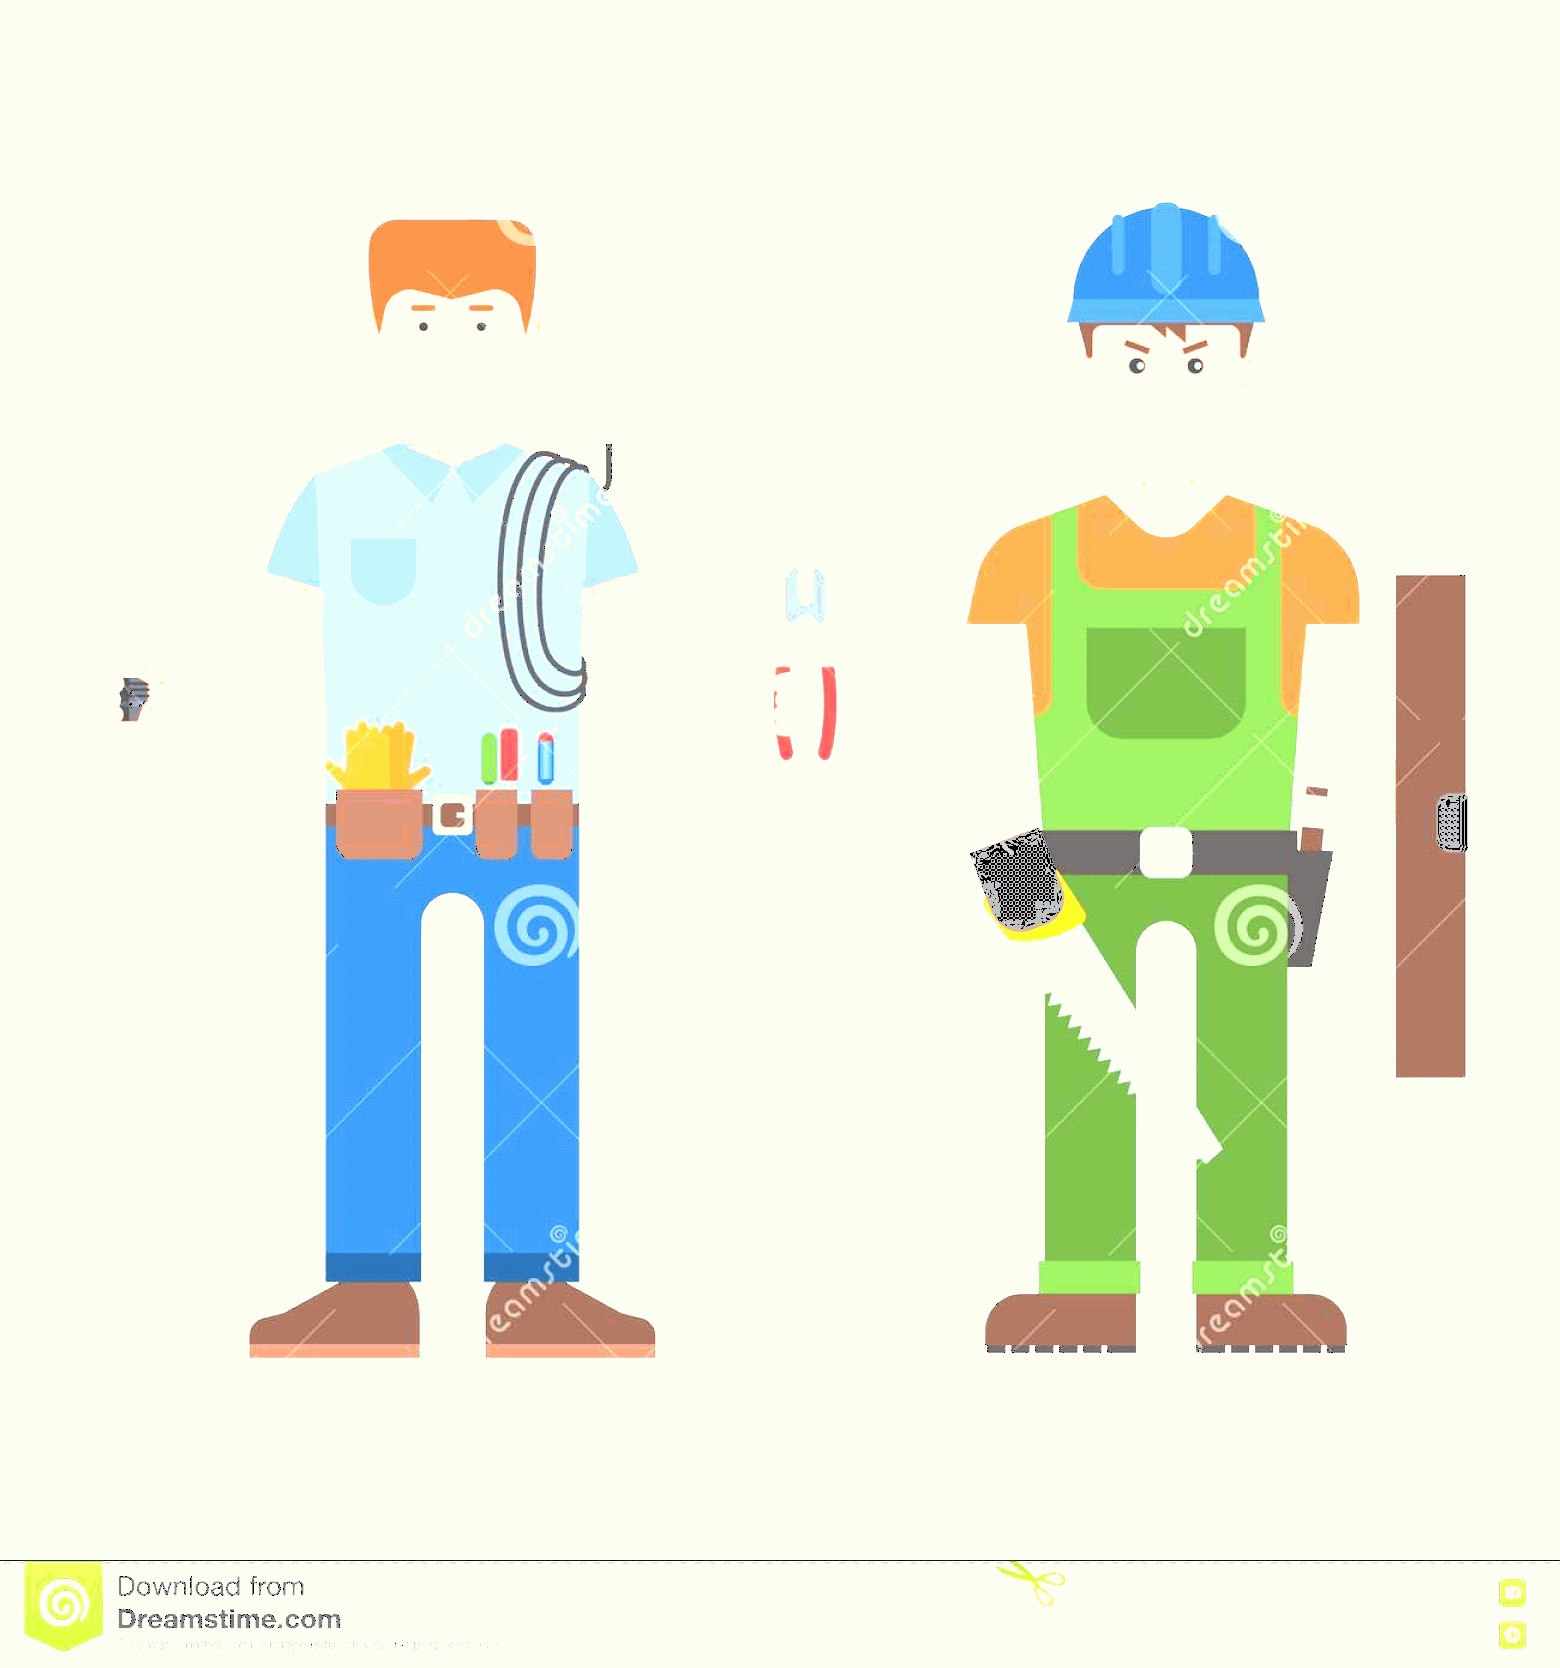 Vectorman LEGO: Stock Illustration Worker Man Vector Character Construction Wearing Work Clothes Working Different Tools Design Isolated Person Image